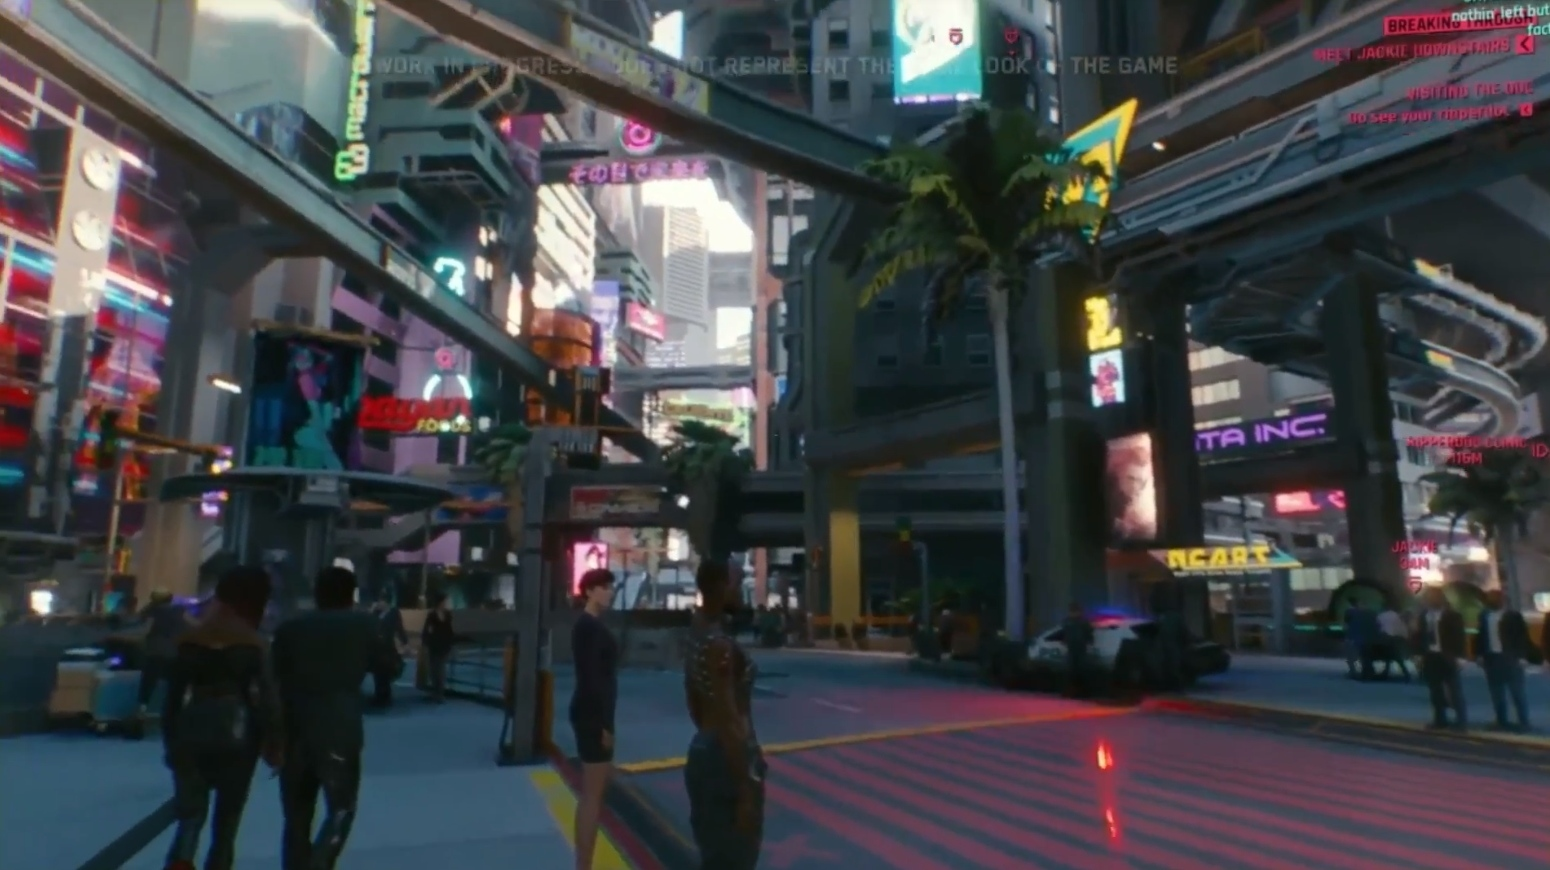 Cyberpunk 2077 shows 48 minutes of gameplay | Feed4gamers